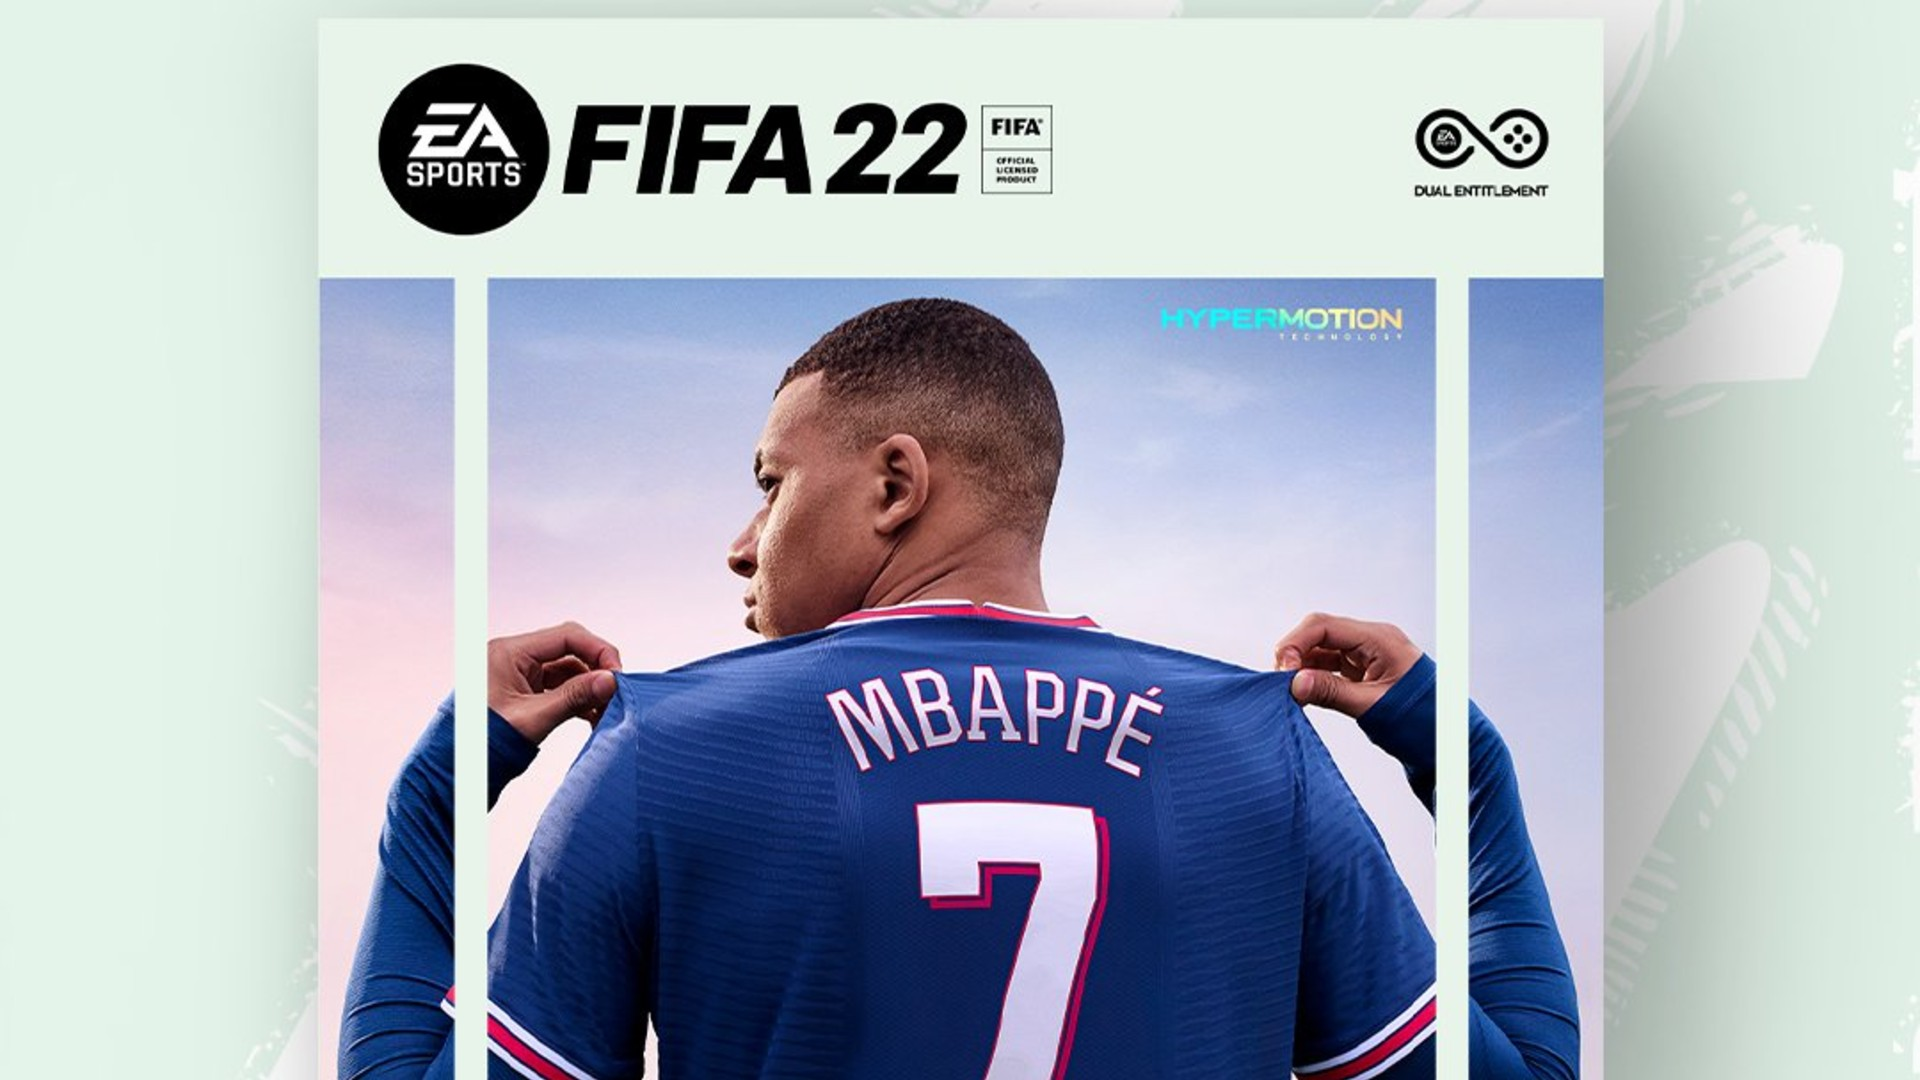 FIFA 22: Every FIFA video game cover since inception